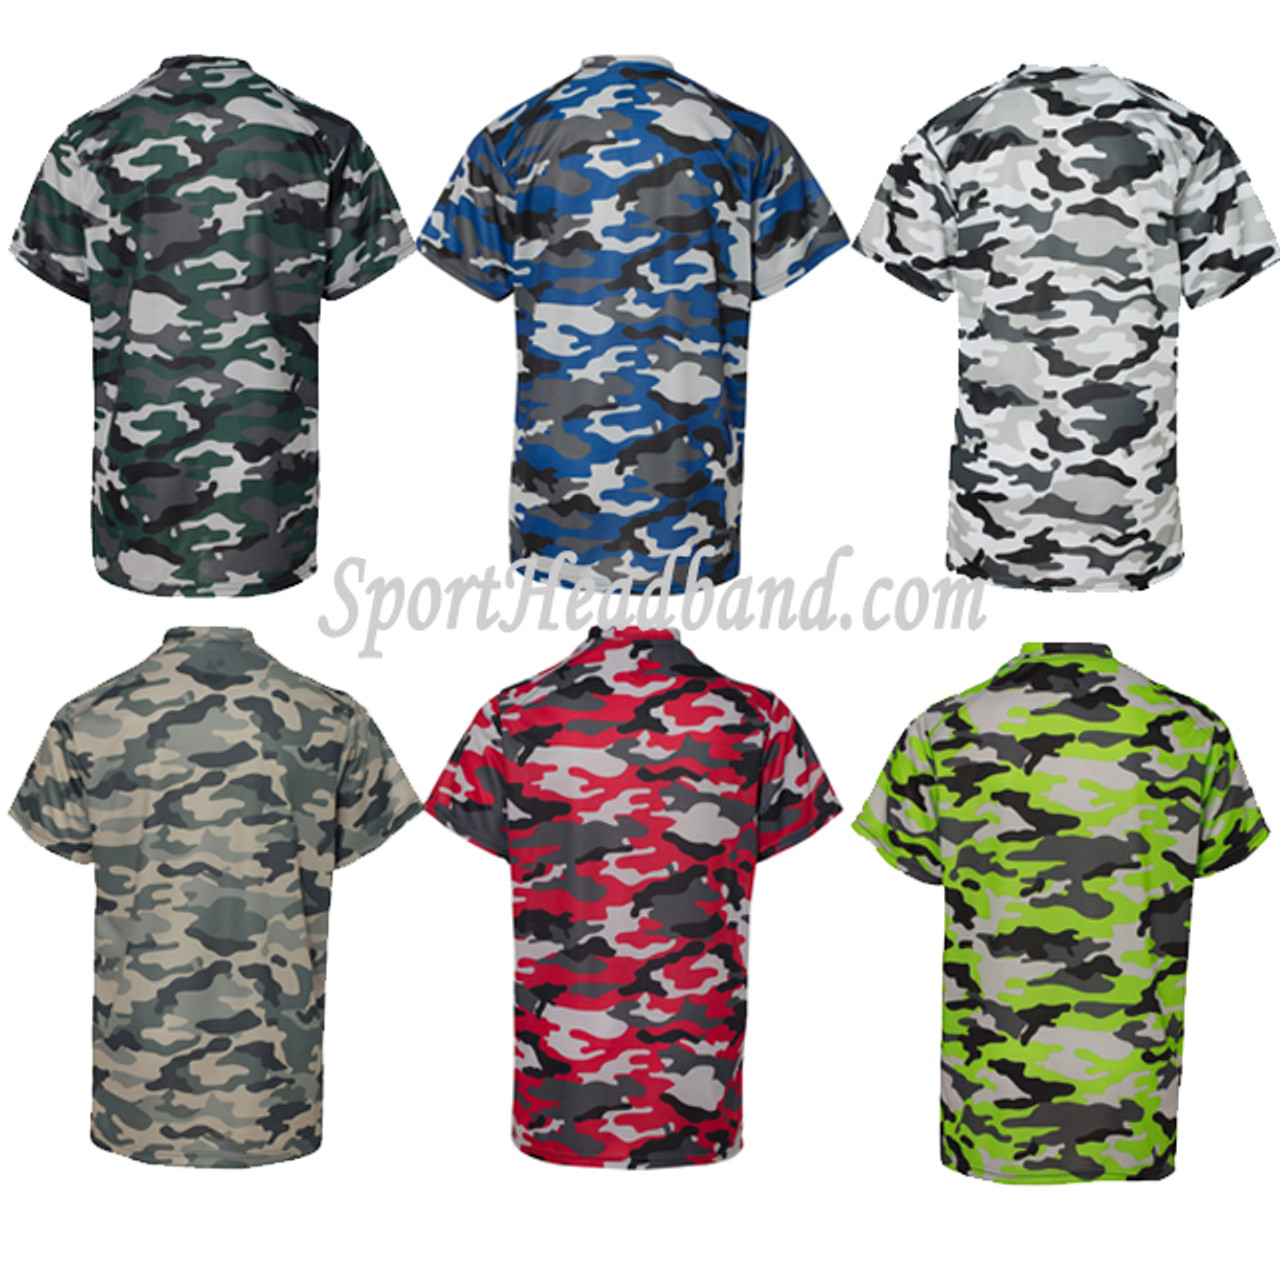 6d0de7624 Youth Camouflage Short Sleeve Tee Shirt - SportHeadband.com